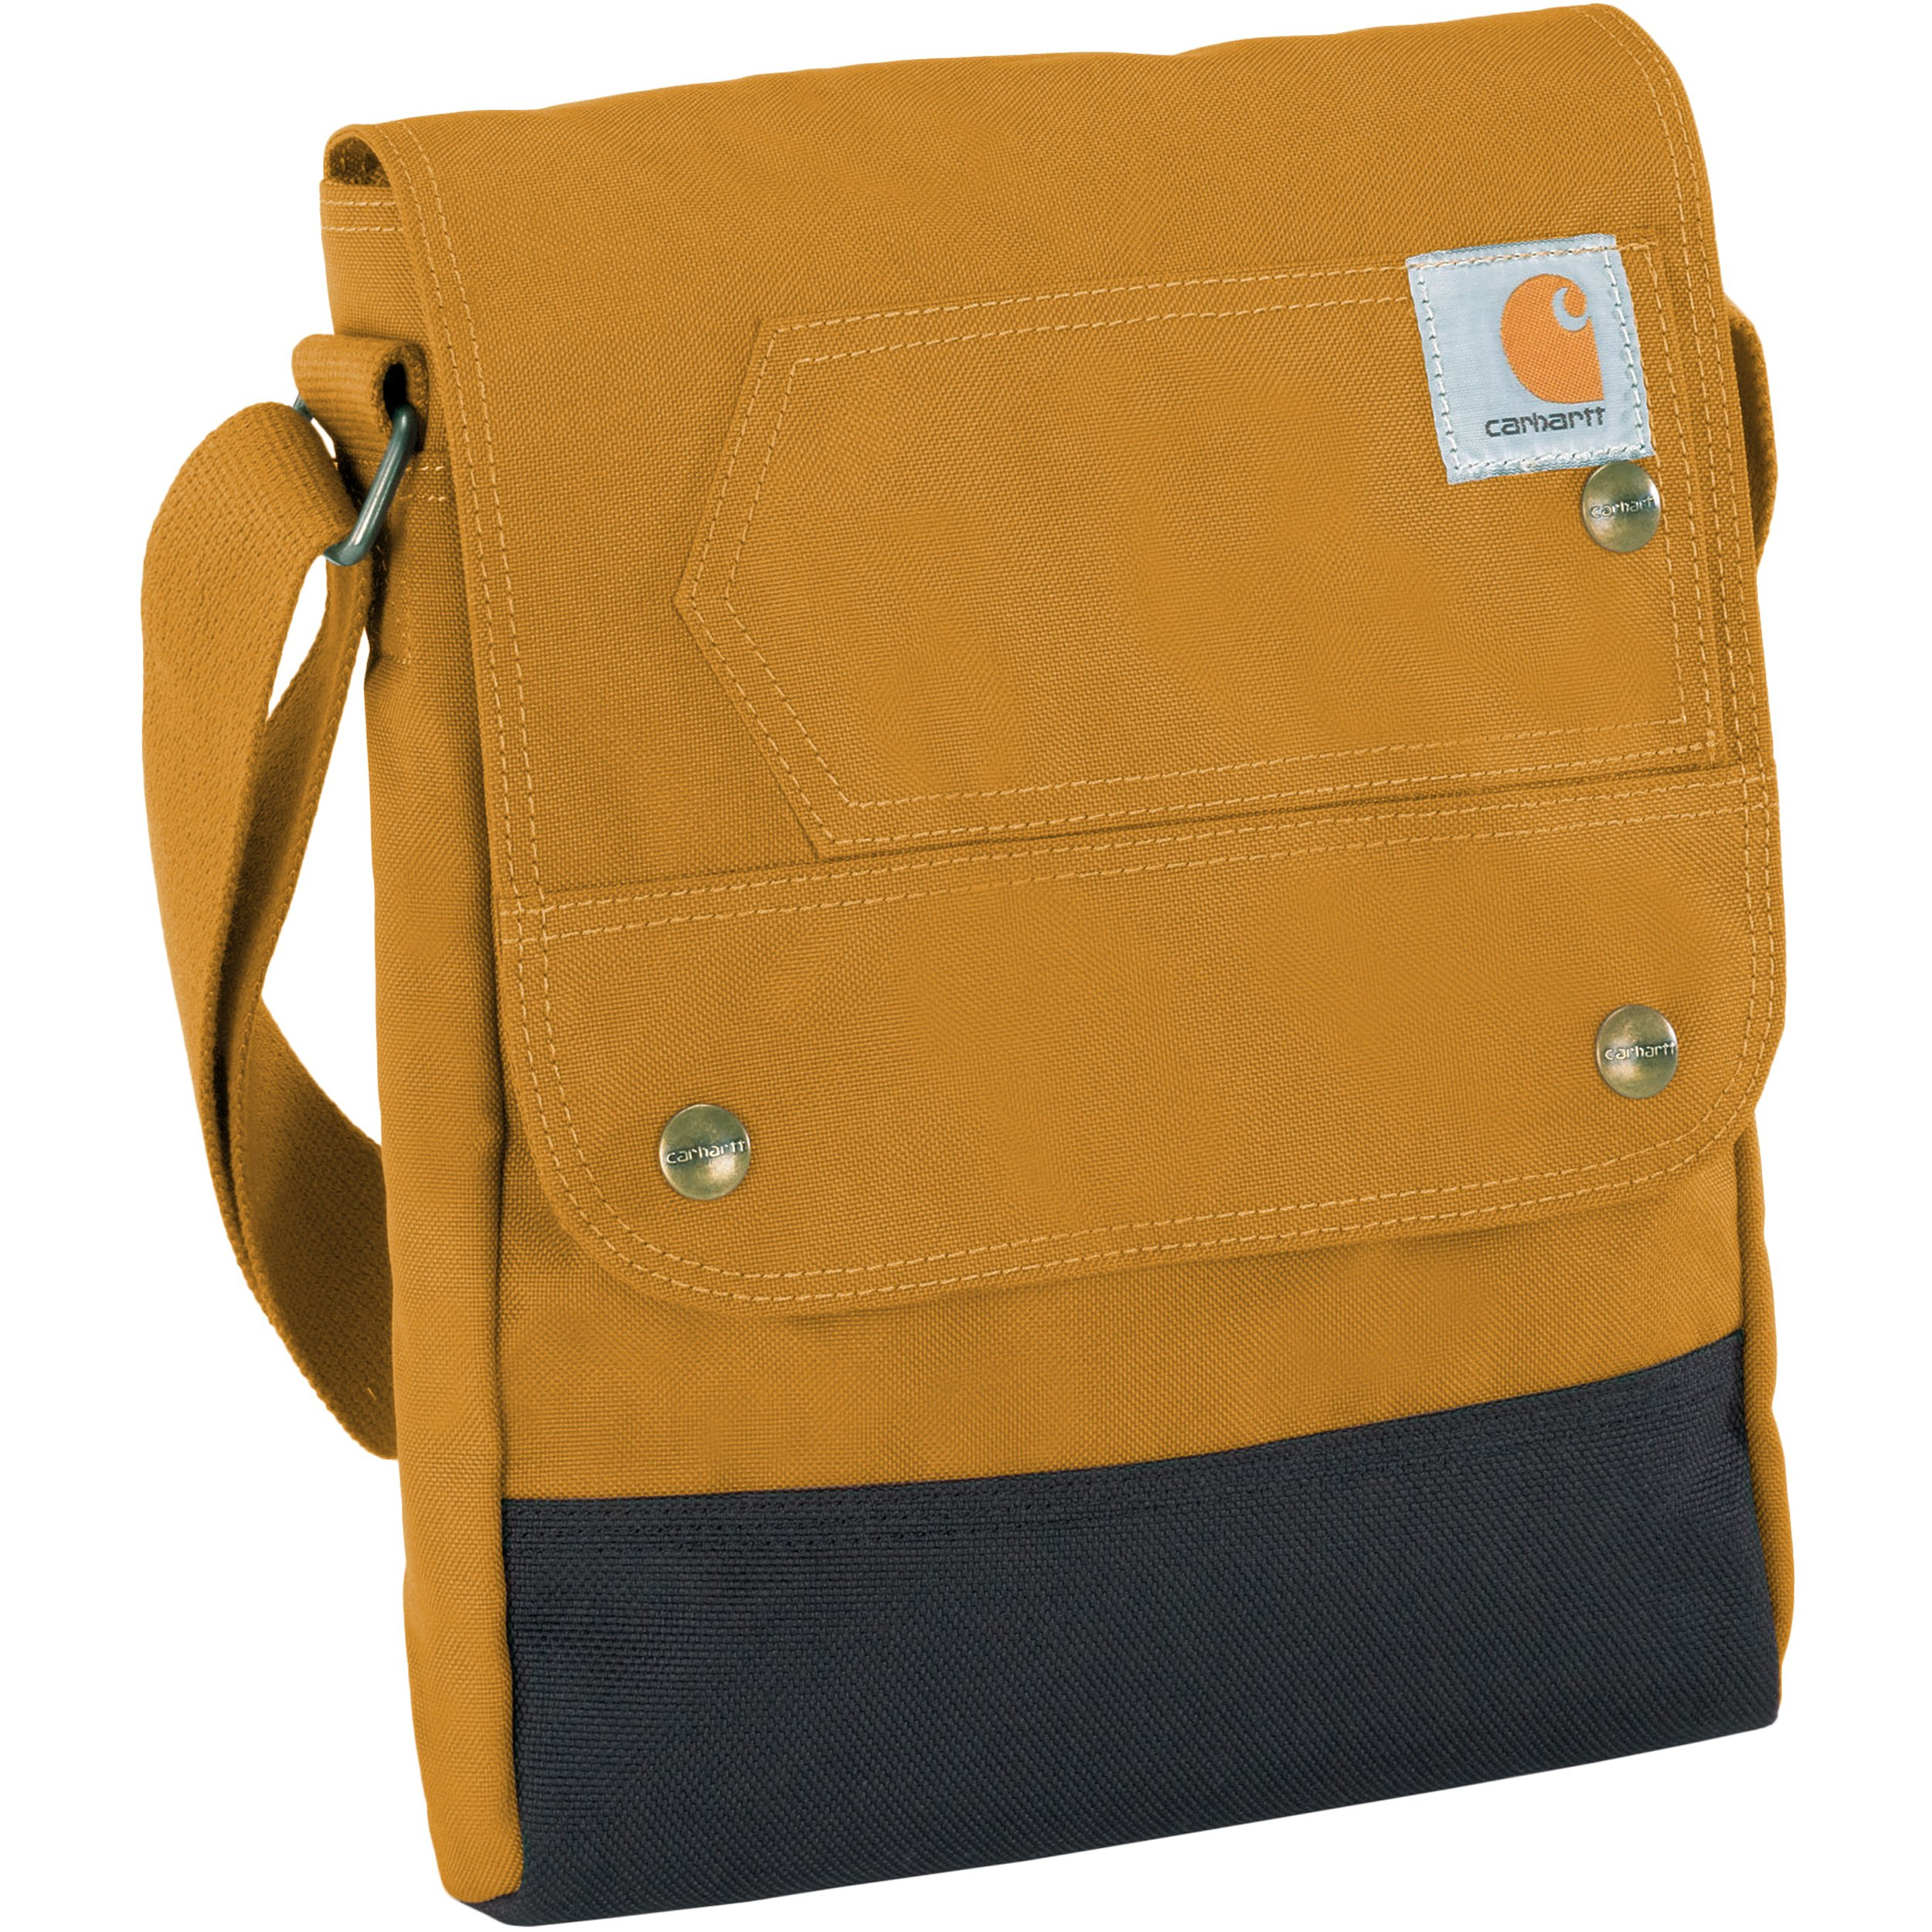 Carhartt Legacy Women's Cross Body Carry All, Carhartt Brown by Carhartt